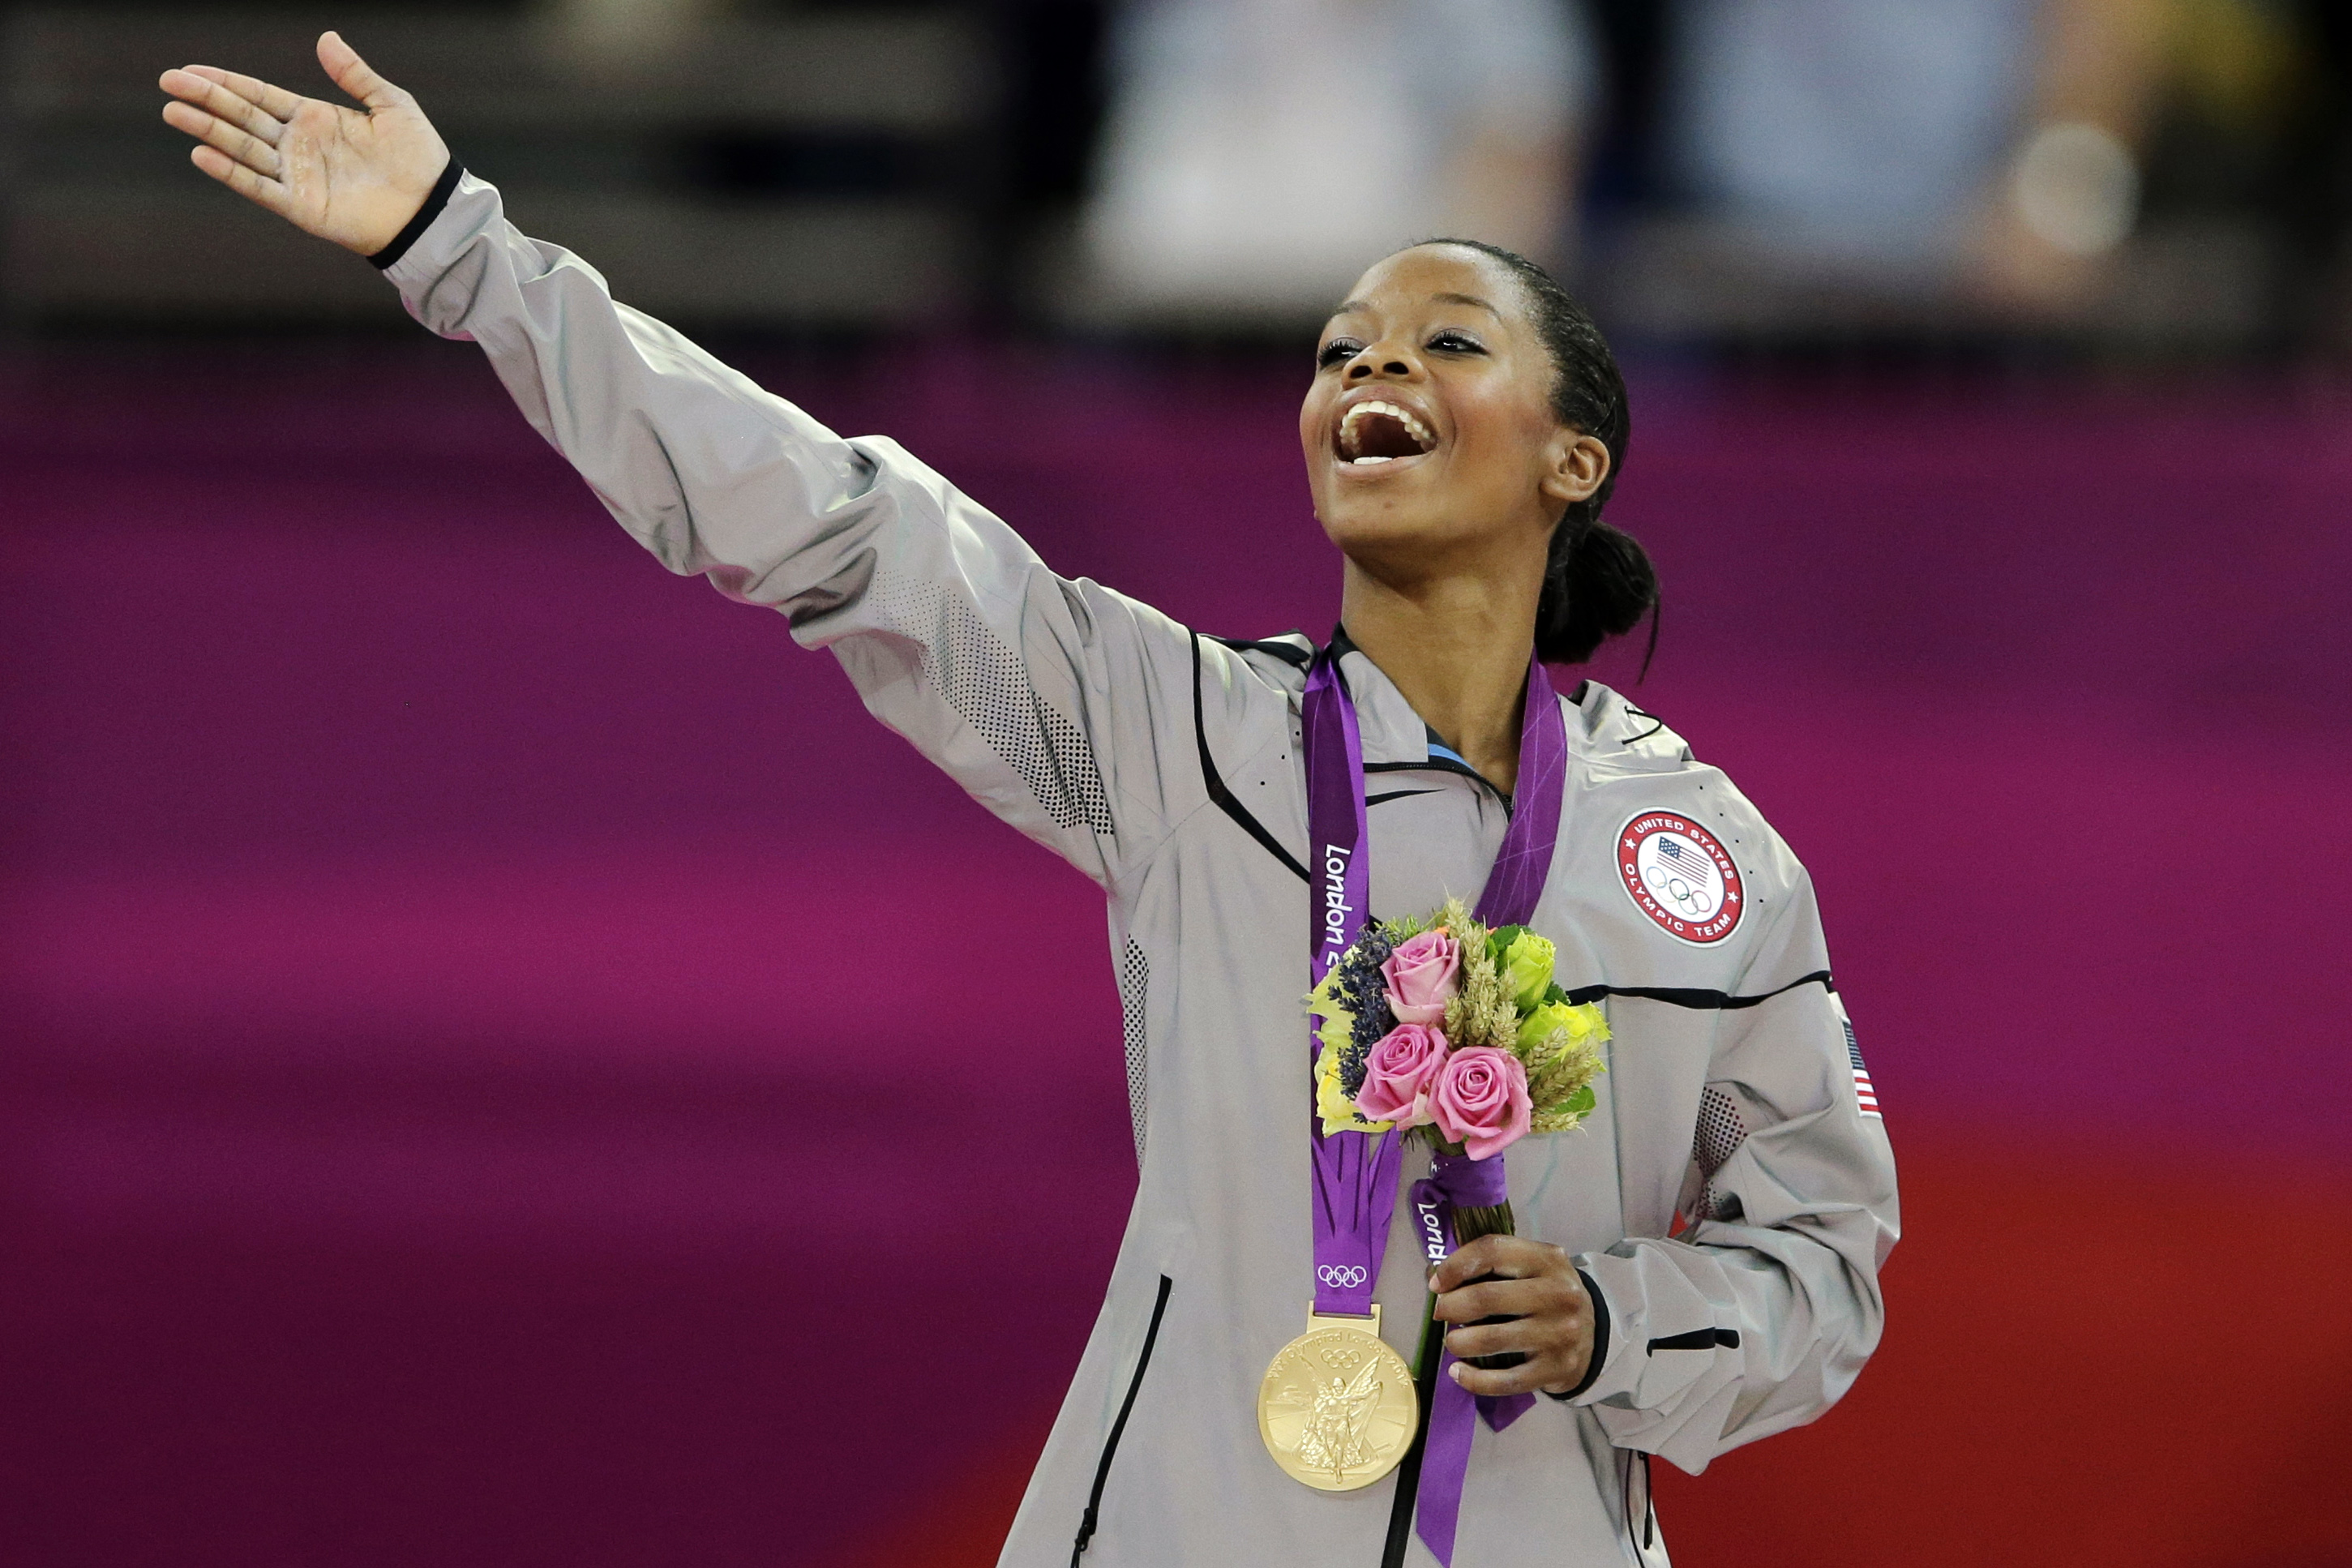 FILE - In this Aug. 2, 2012, file photo, Gabrielle Douglas, of the United States, acknowledges the crowd after receiving her gold medal in the artistic gymnastics women's individual all-around competition at the 2012 Summer Olympics in London. The 2012 Ol